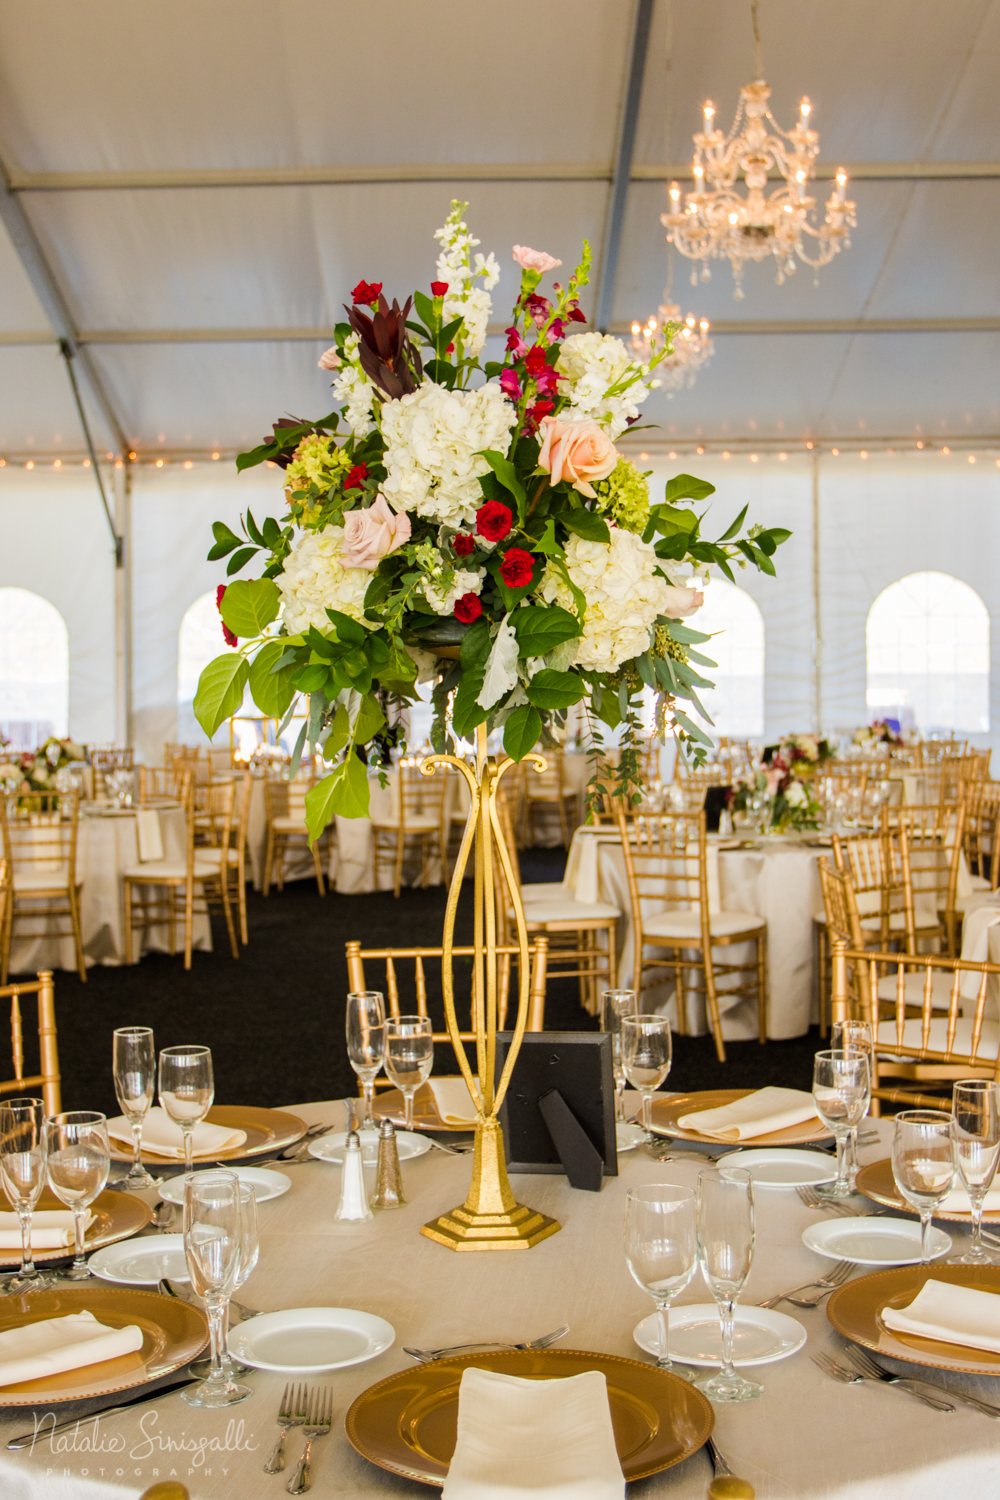 Rochester New York Wedding & Event planning